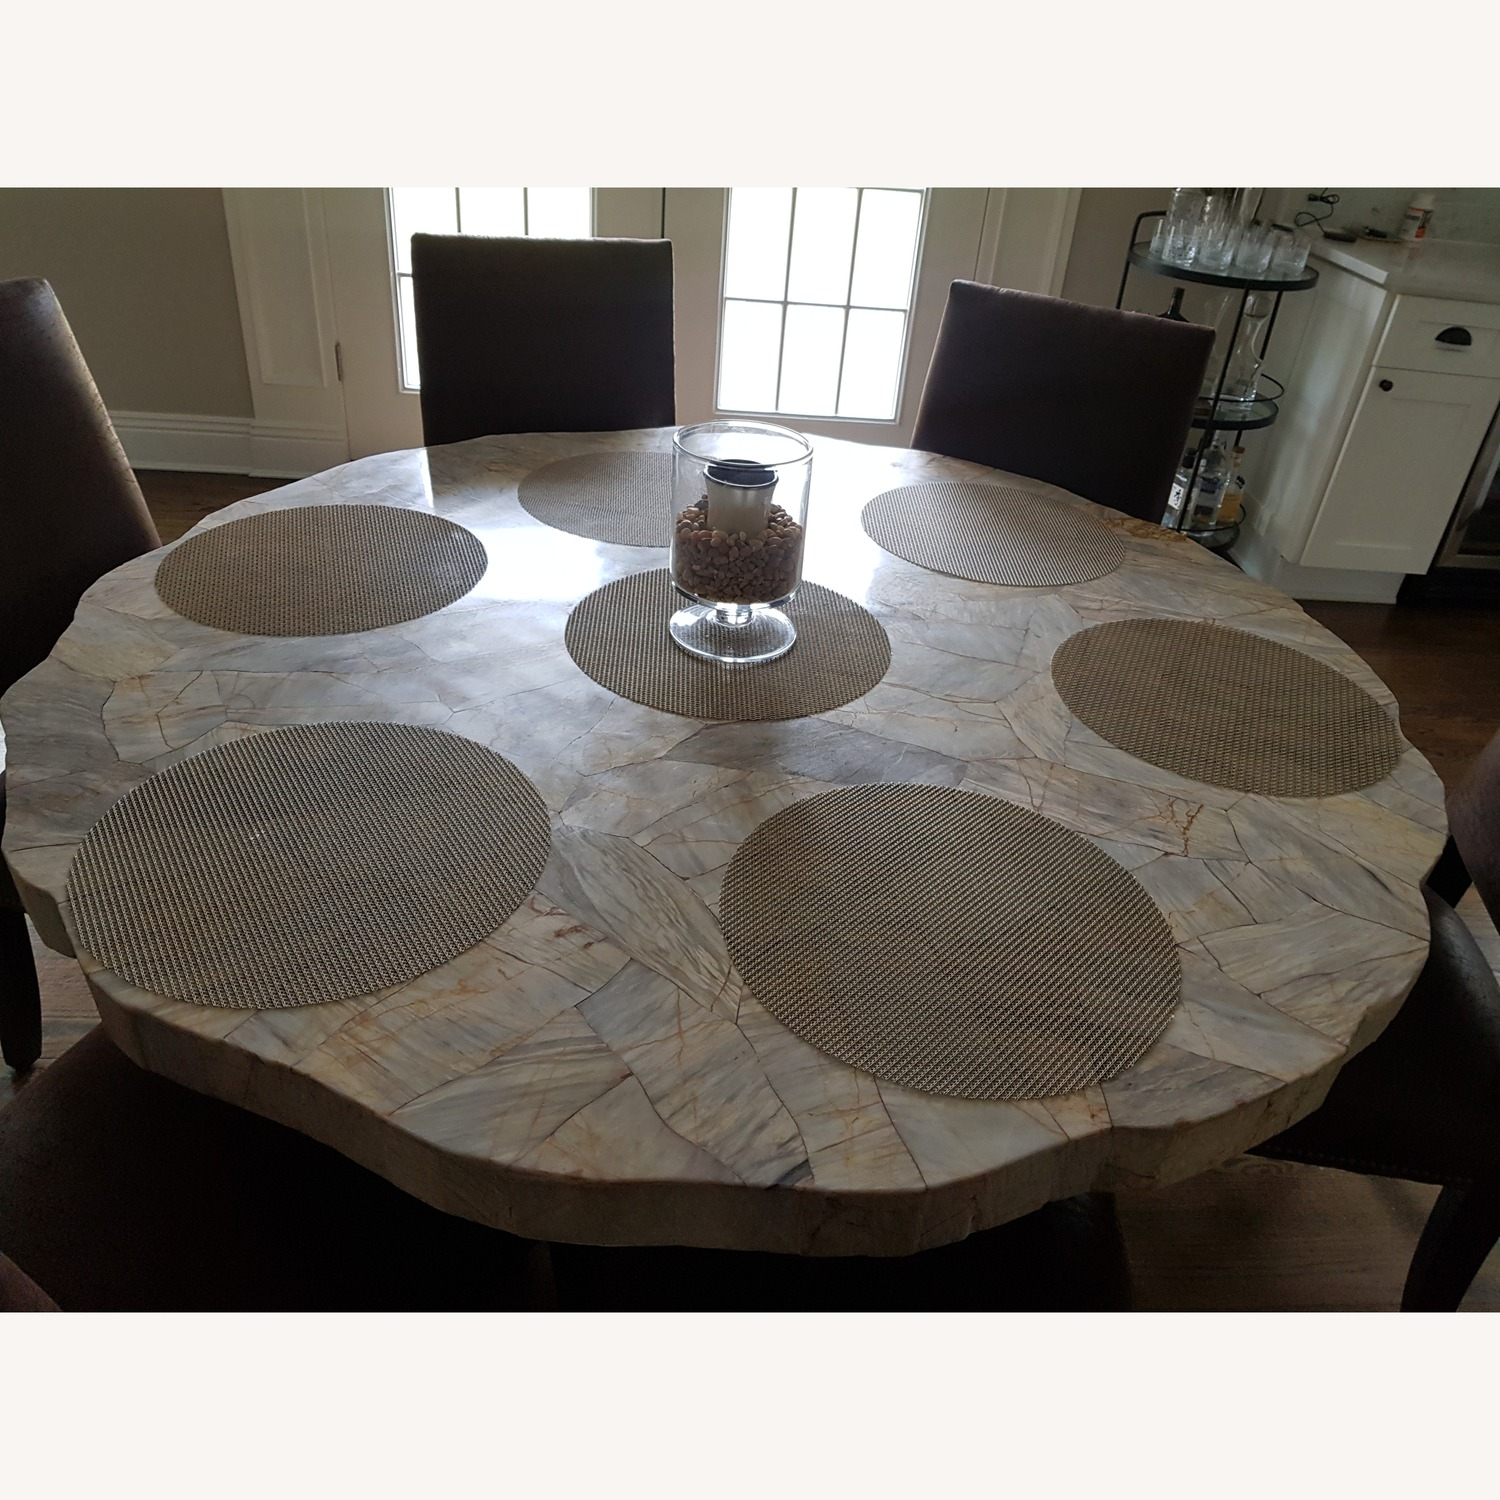 Arhaus Luxury Peta Round Dining Table with 6 Chairs - image-2